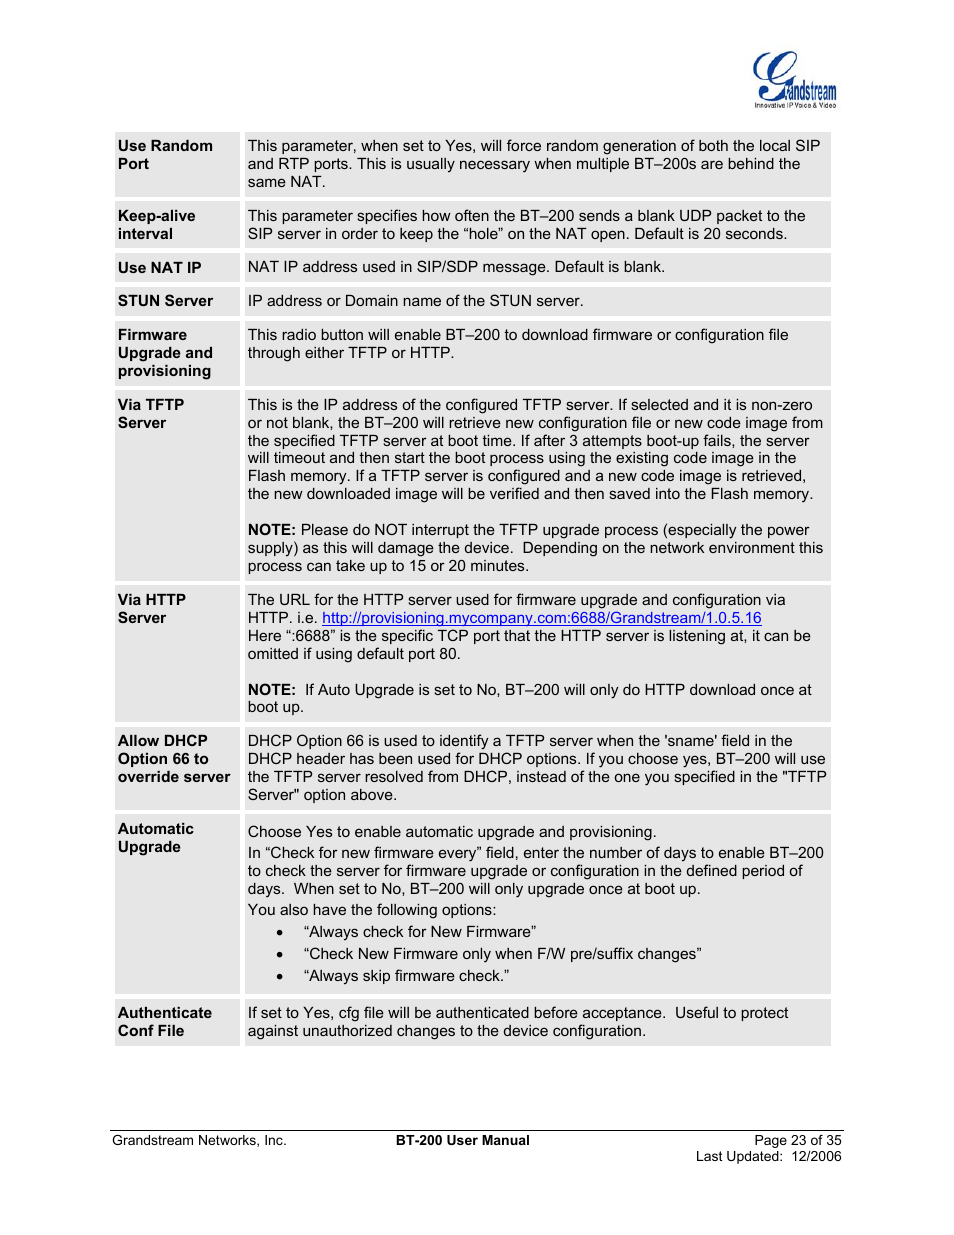 Grandstream Networks BT200 User Manual | Page 23 / 35